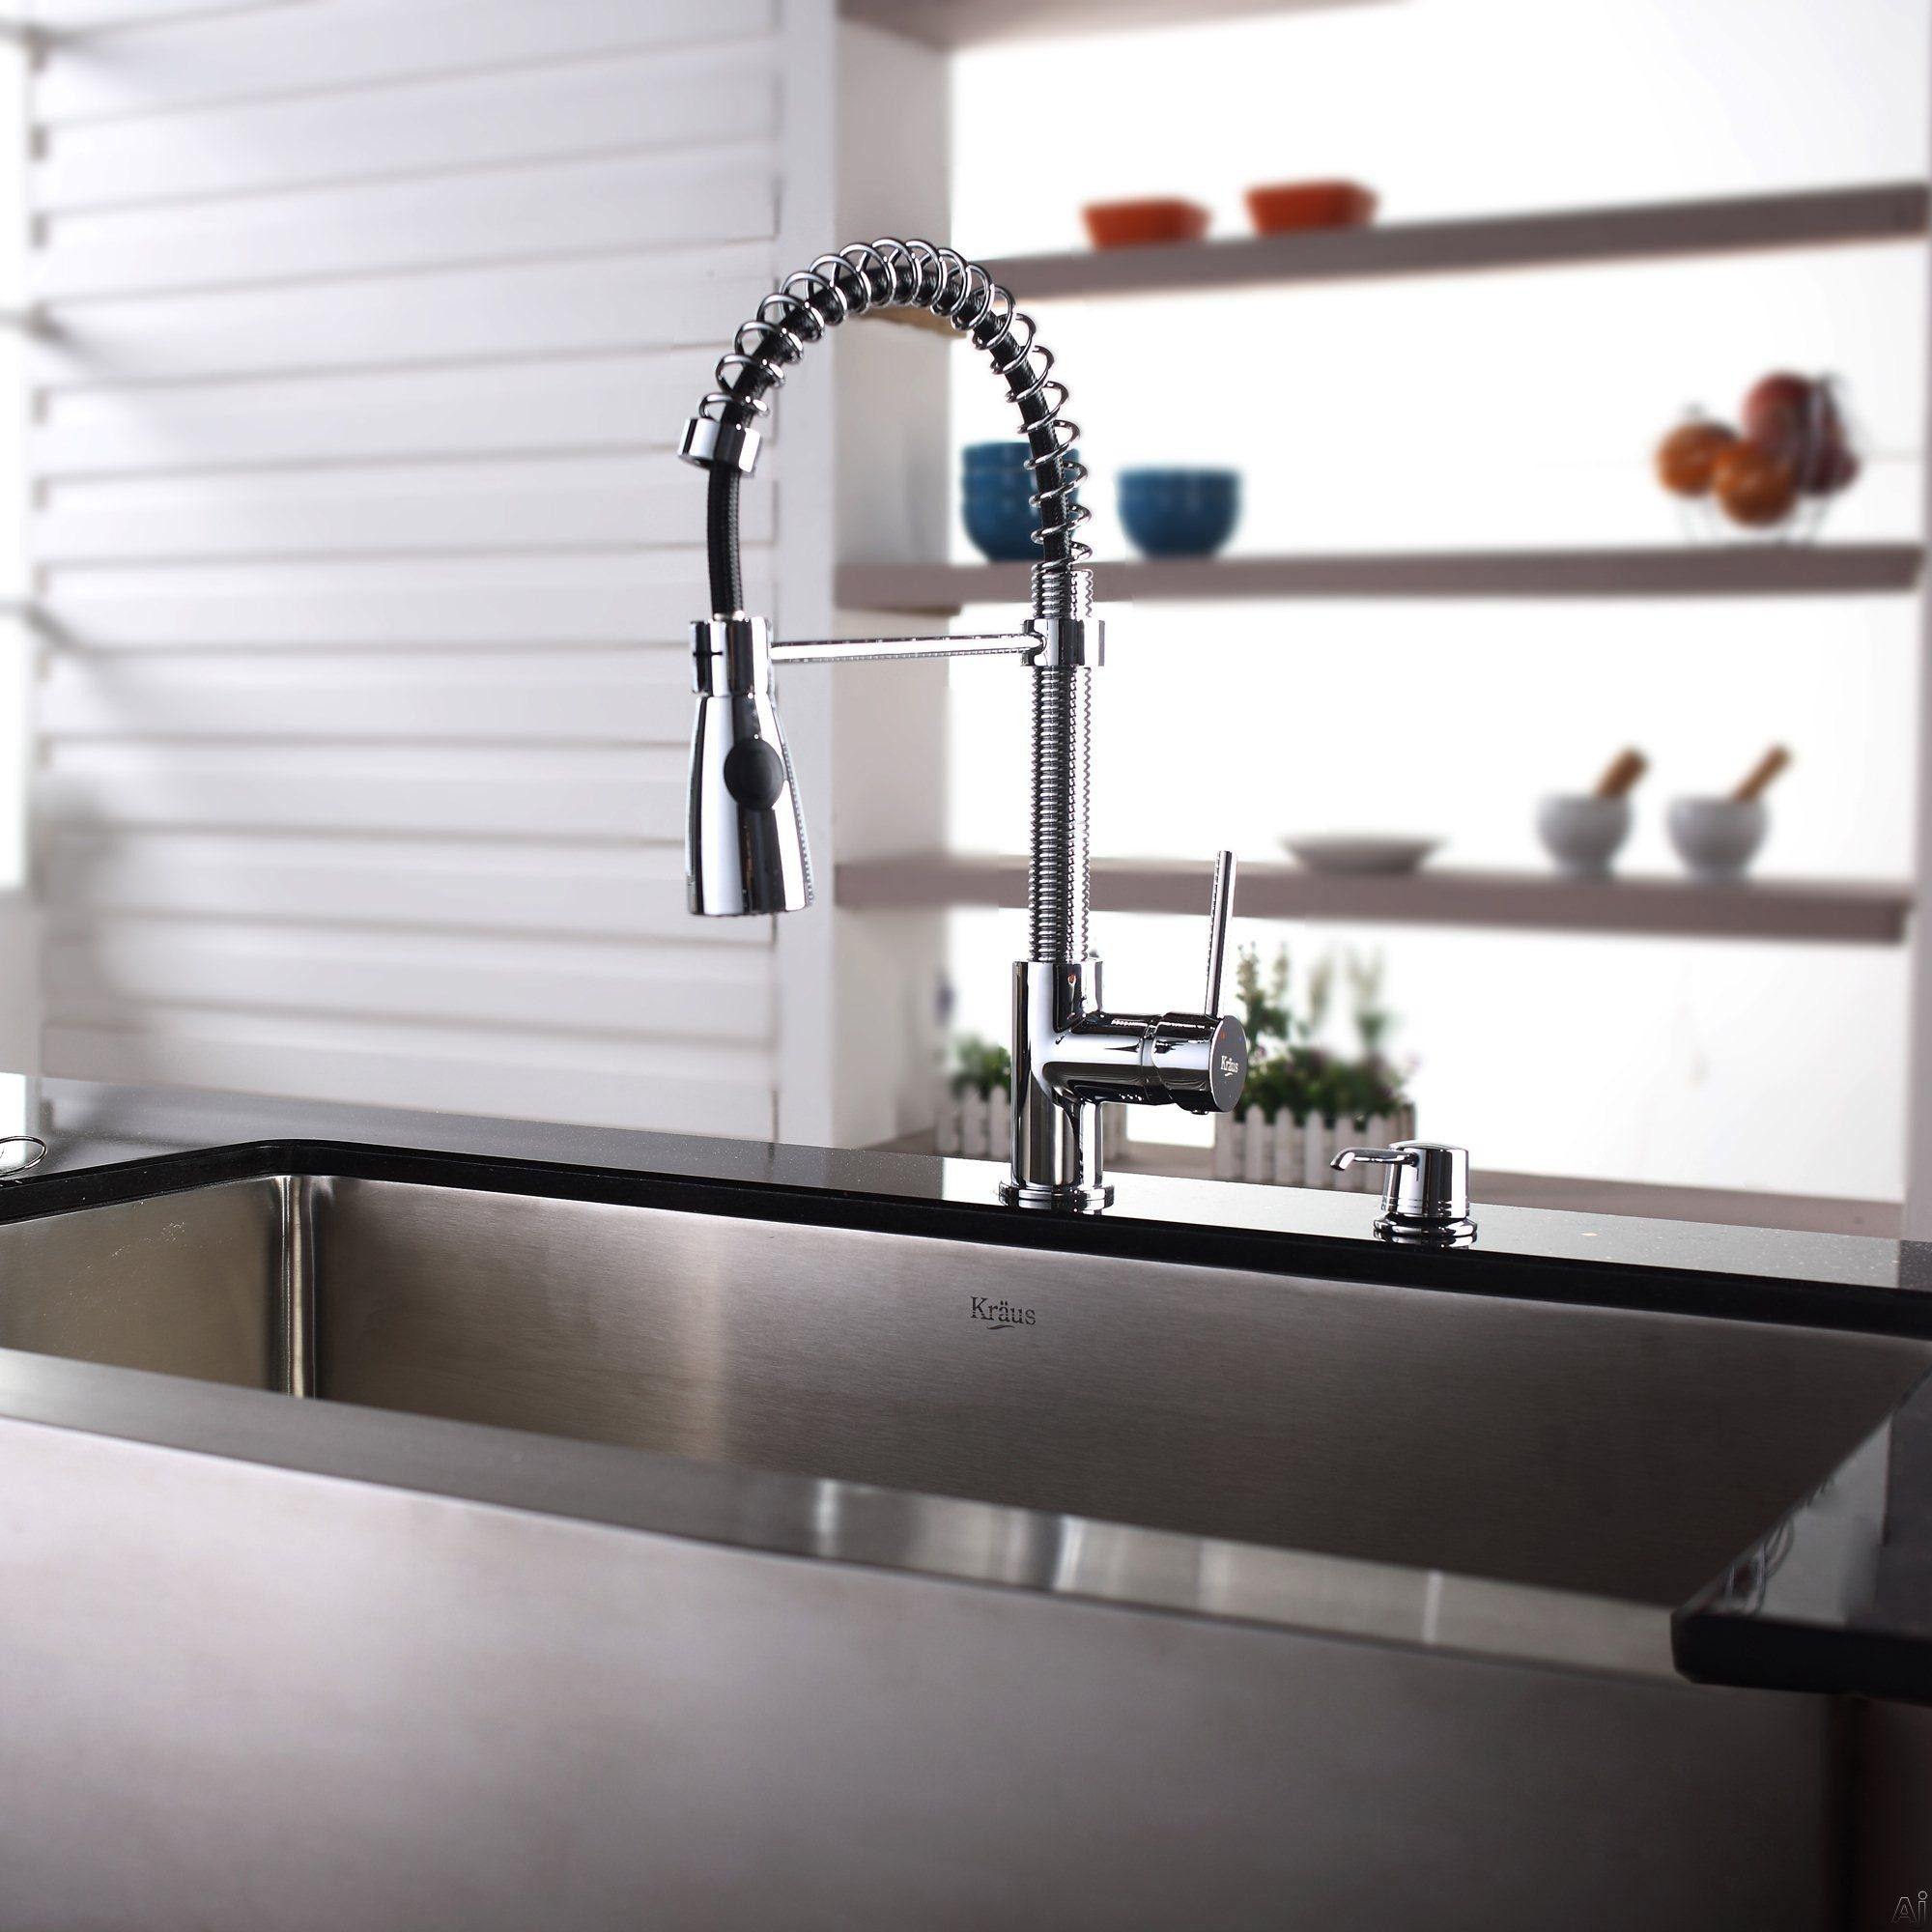 Inch Farmhouse Single Bowl Stainless Steel Sink with Pull-Out Faucet ...